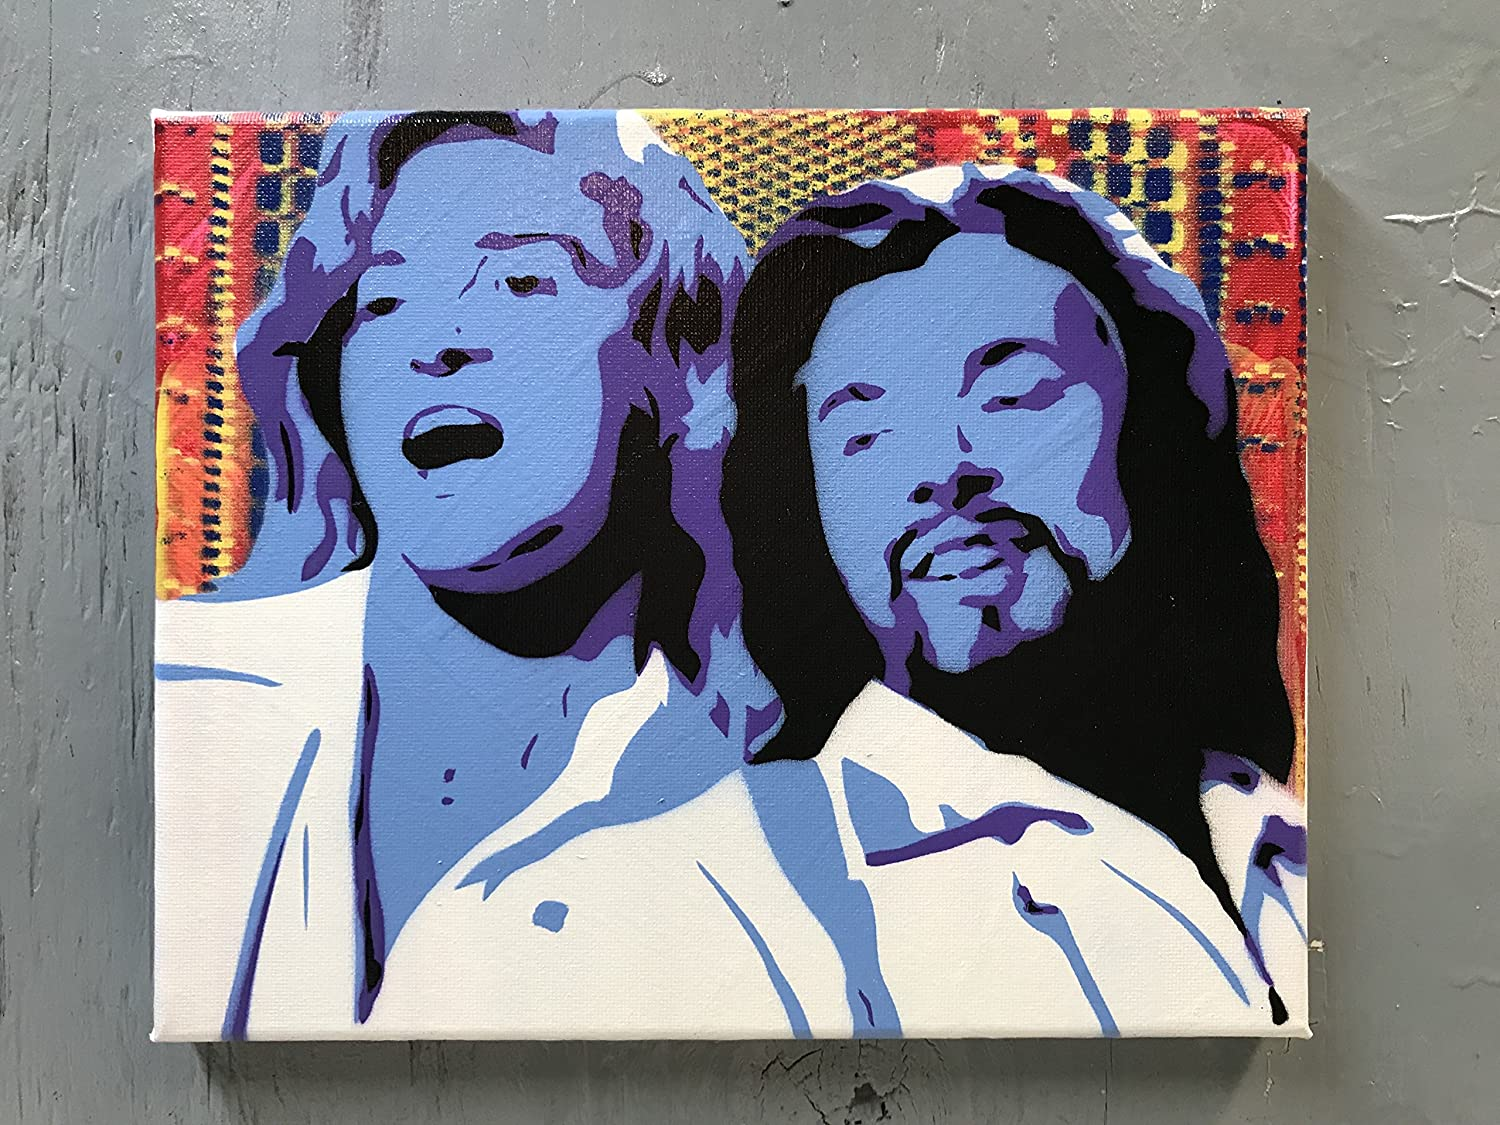 Jimmy Fallon and Justin Timberlake Painting - 8x10x1 Paint on Gallery Canvas - Ready to Hang